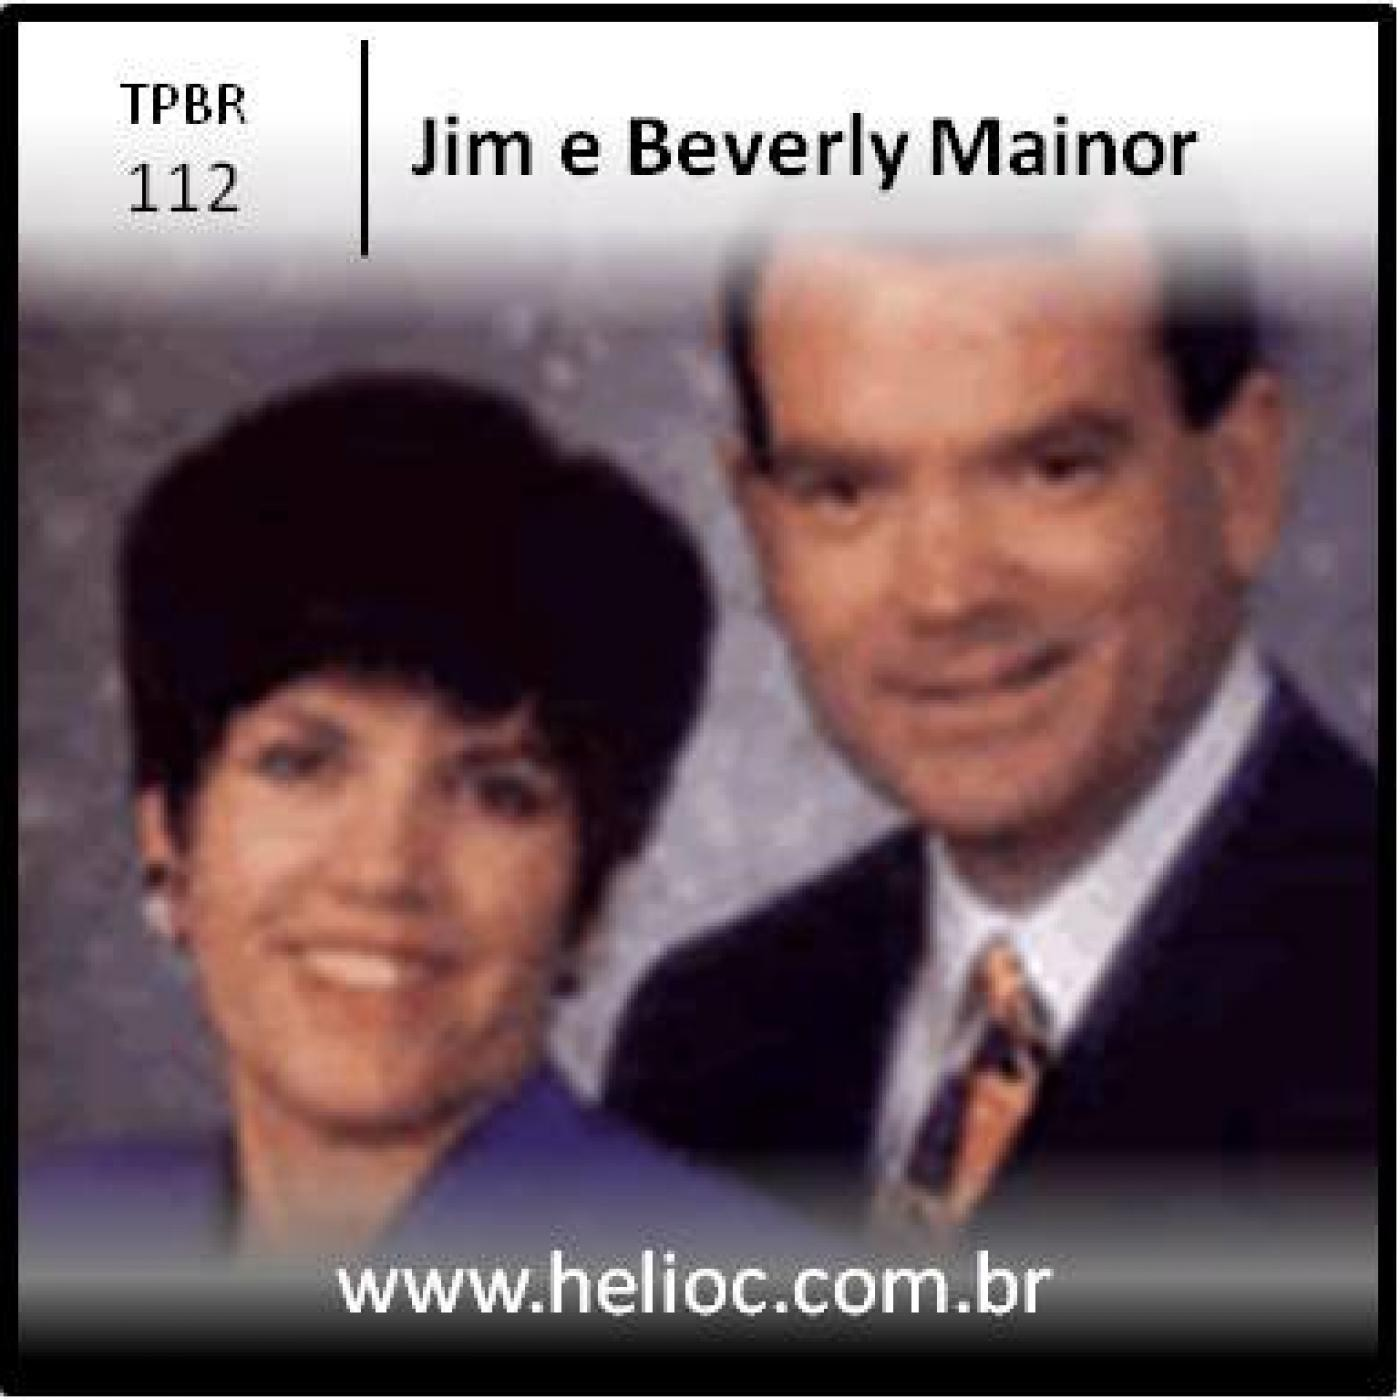 TPBR 112 - Oh Harry - Jim e Beverly Mainor